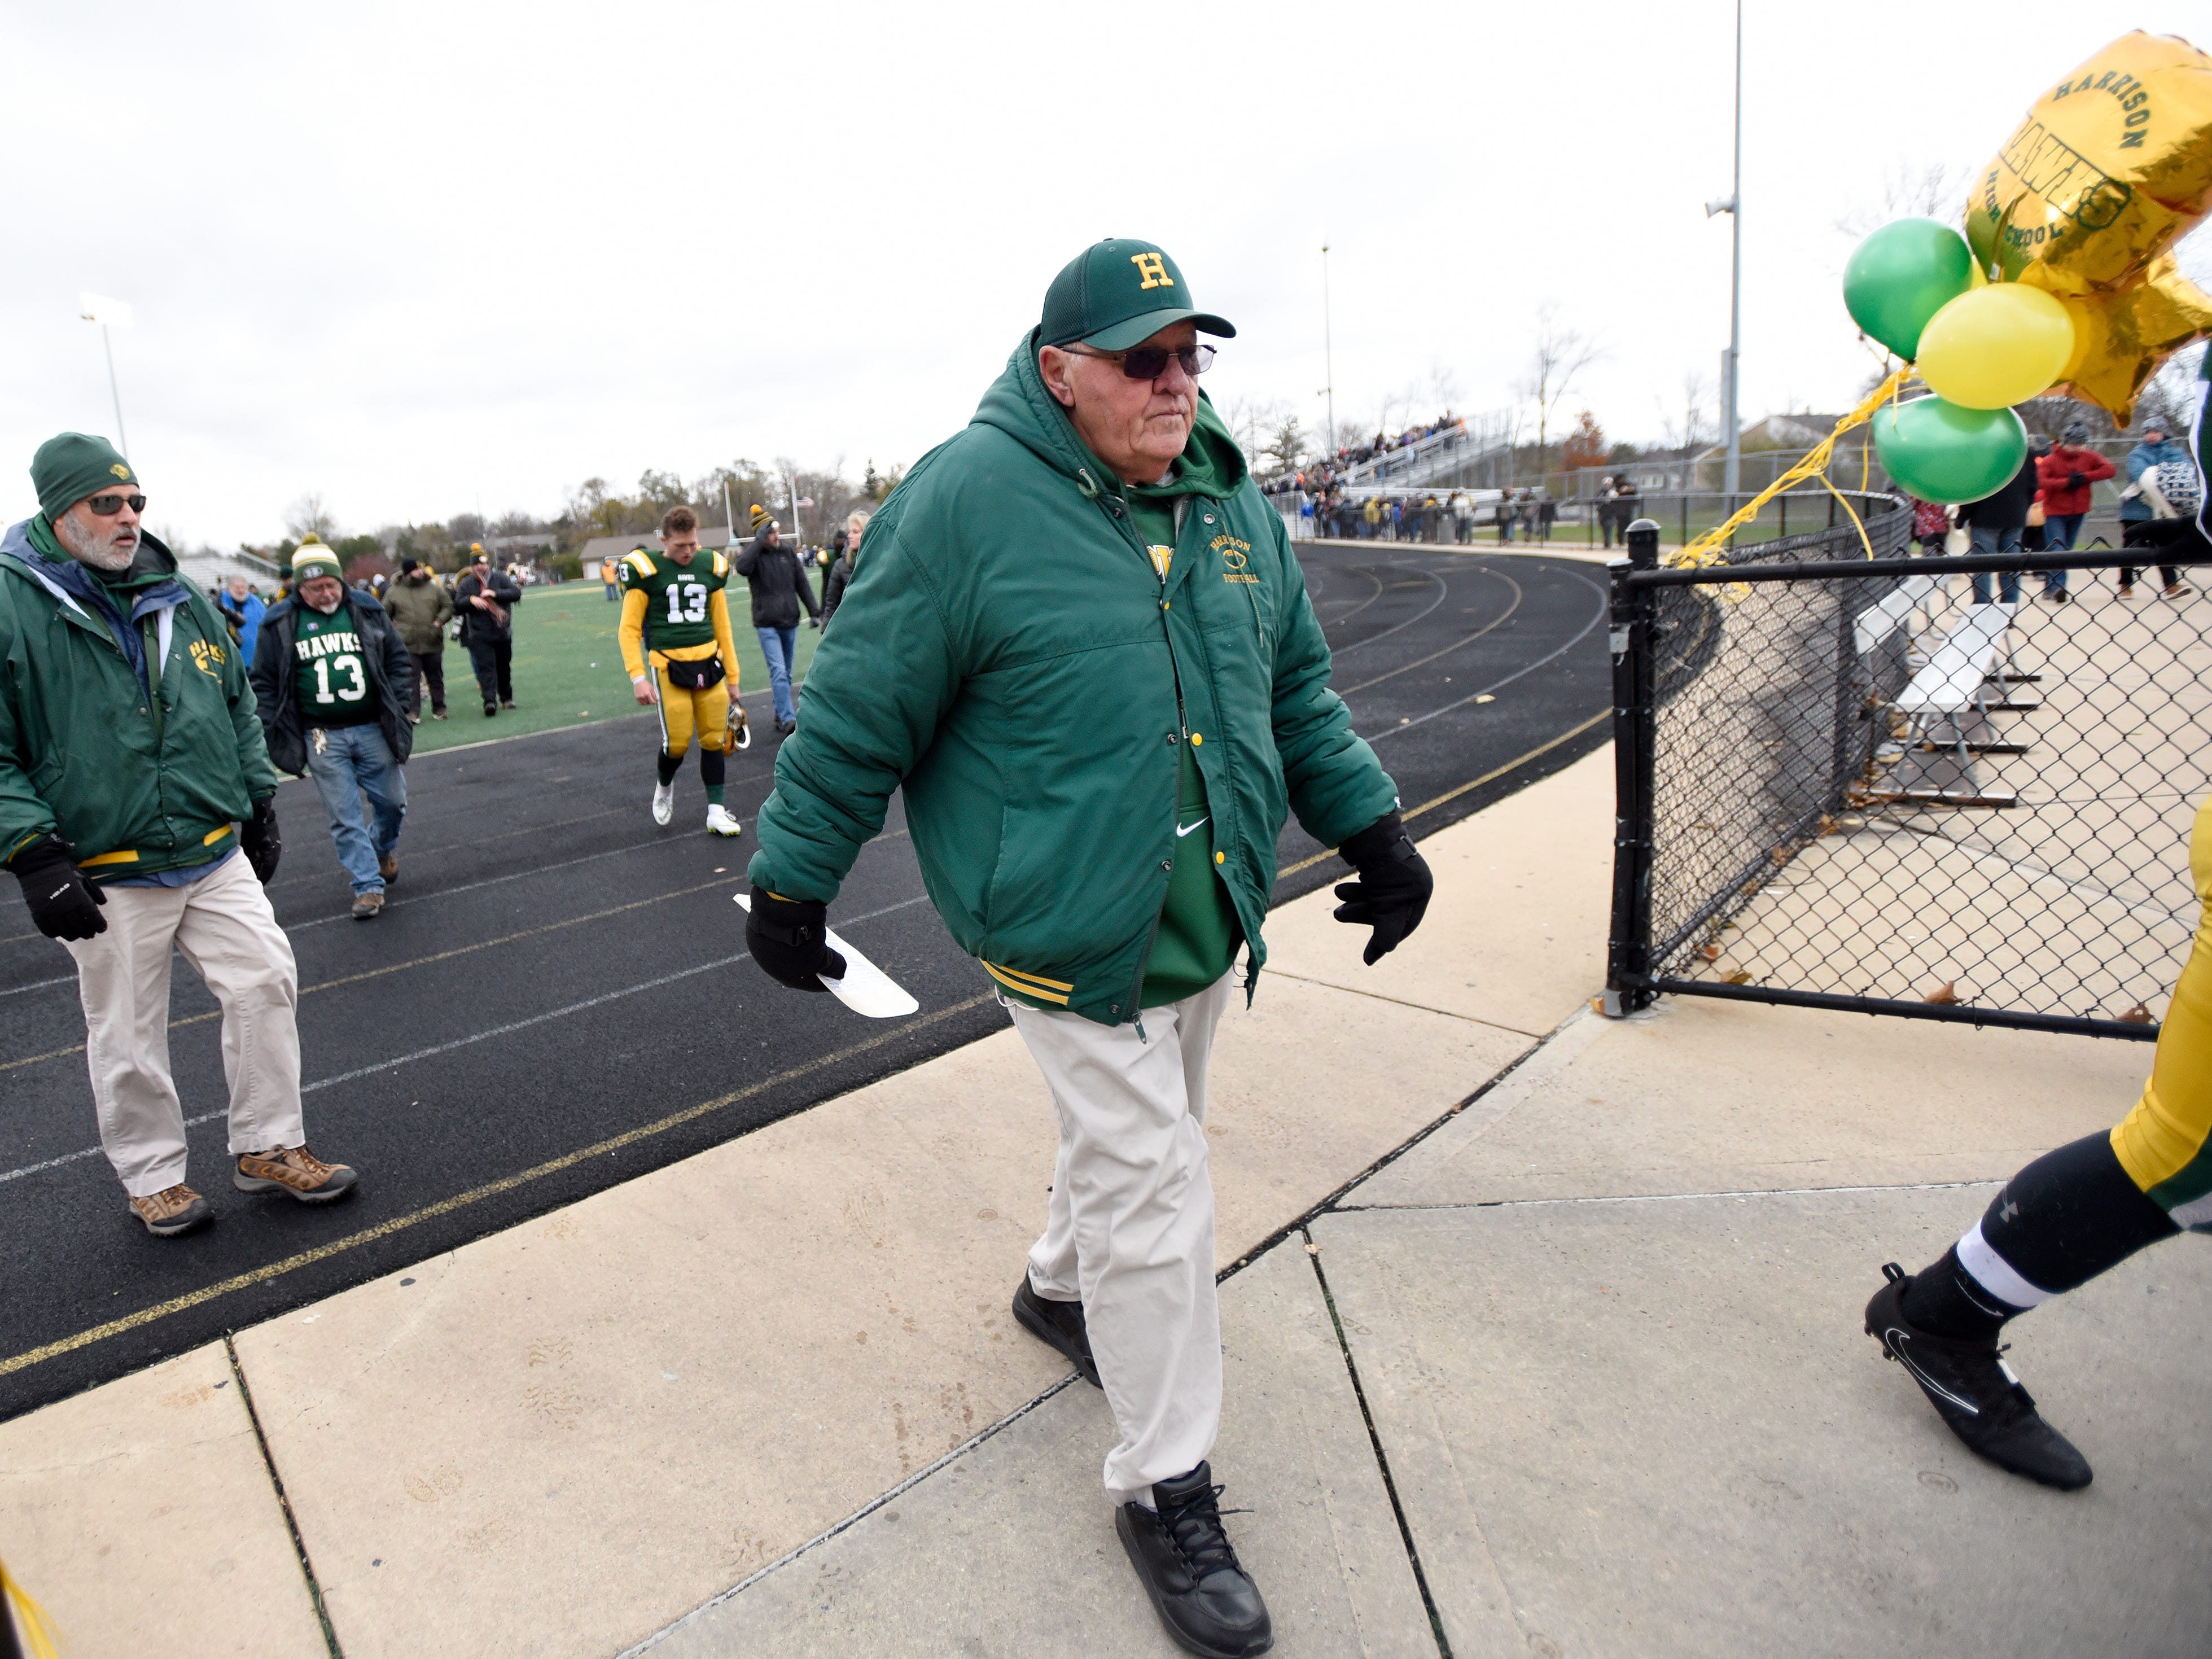 Legendary Farmington Hills Harrison football head coach John Herrington walks off the football field for the last time after his team lost to Chelsea.  The school will close in 2019.